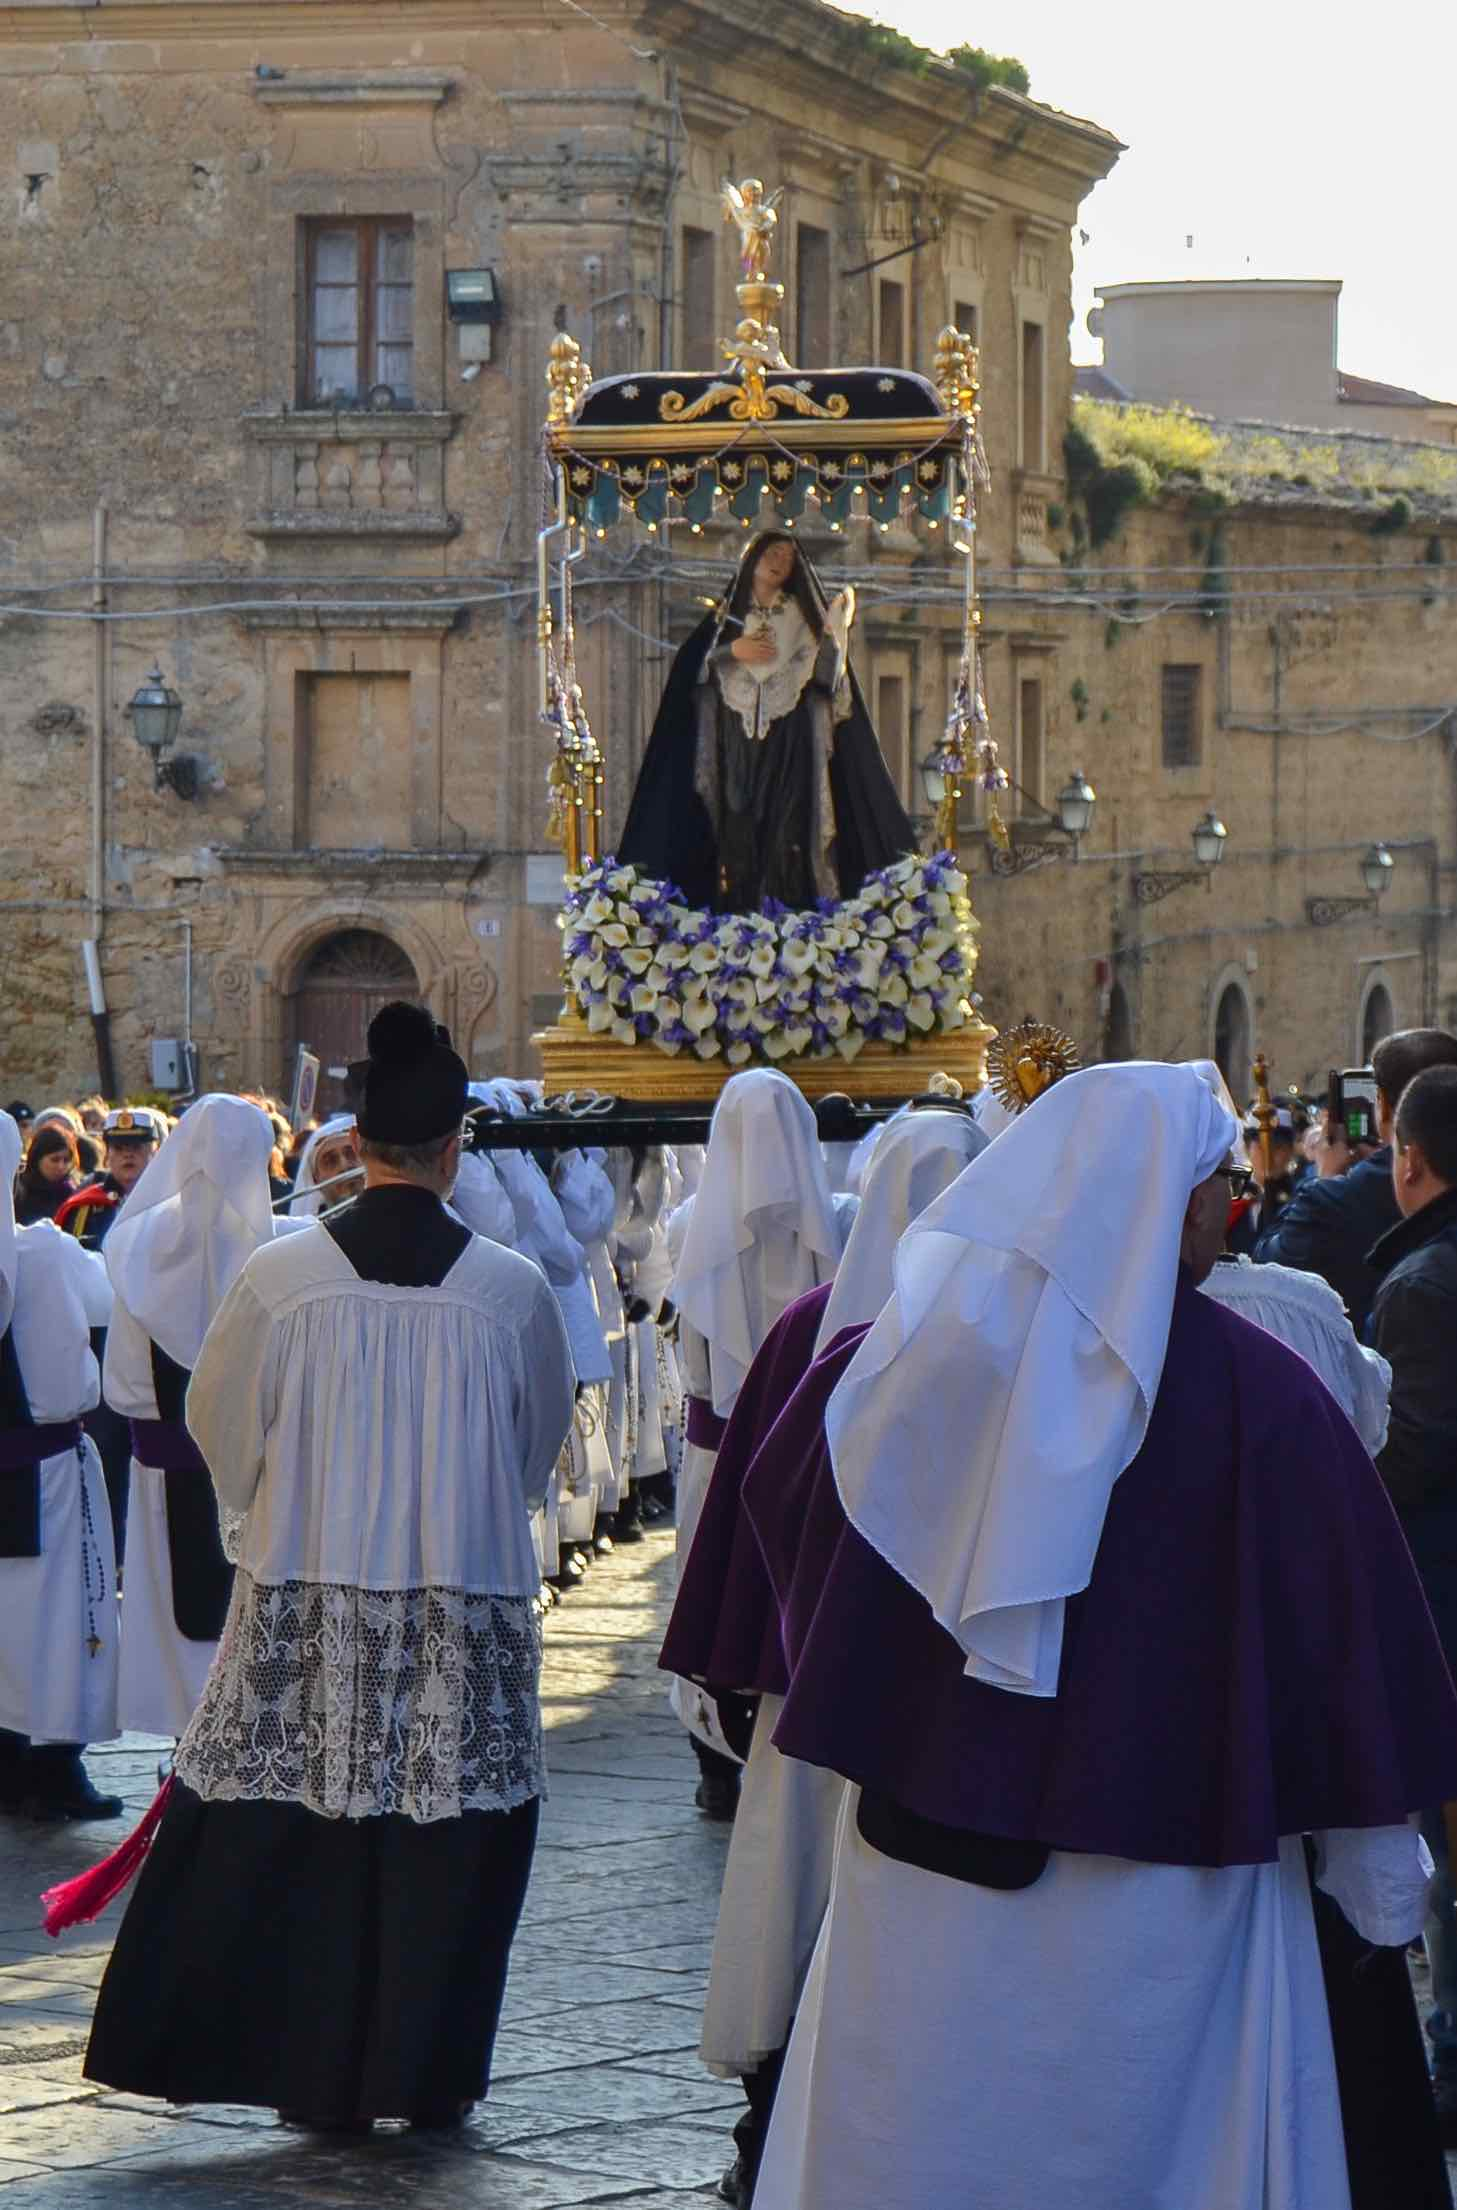 The Good Friday procession in Enna, one of the most amazing events of the Holy Week in Sicily